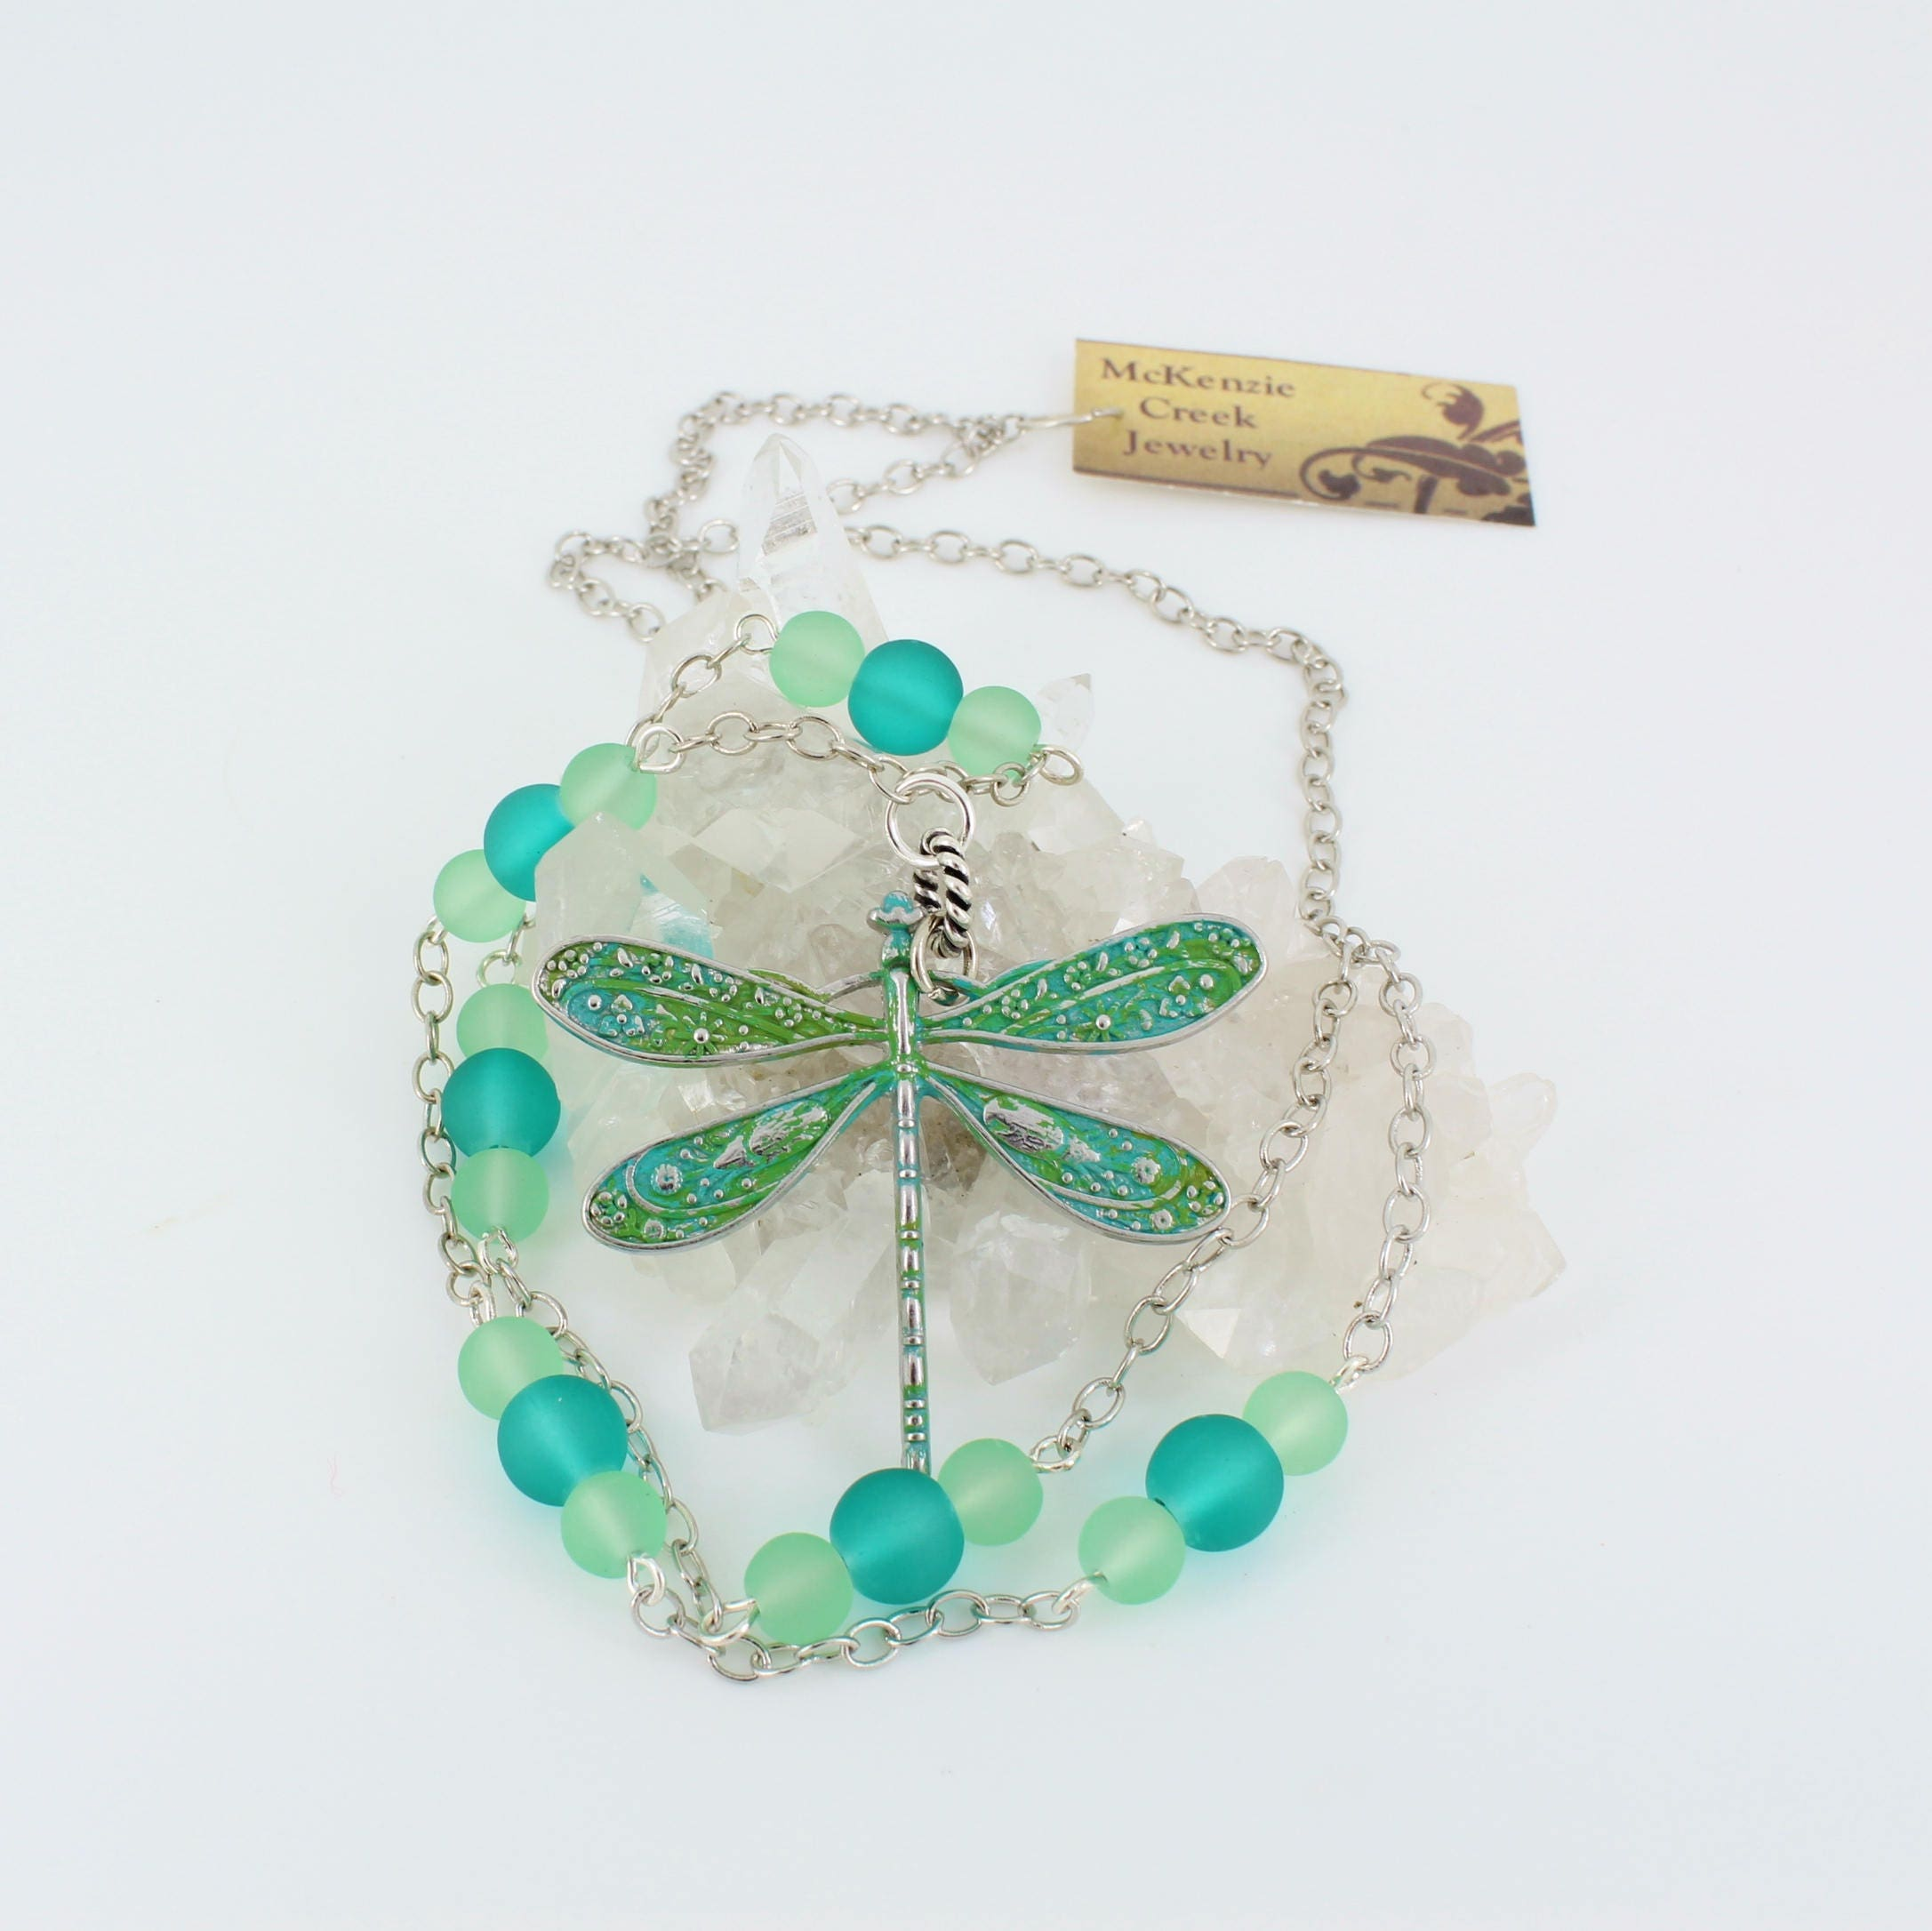 Verdigris,Dragonfly,Necklace,Jewelry,beach_glass,dragonfly_necklace,aqua_jewelry,patina,long_necklace,nature_lover,beachy_look,matte_glass_beads,ocean_colors,patinated dragonfly pendant,matte glass beads,chain,findings